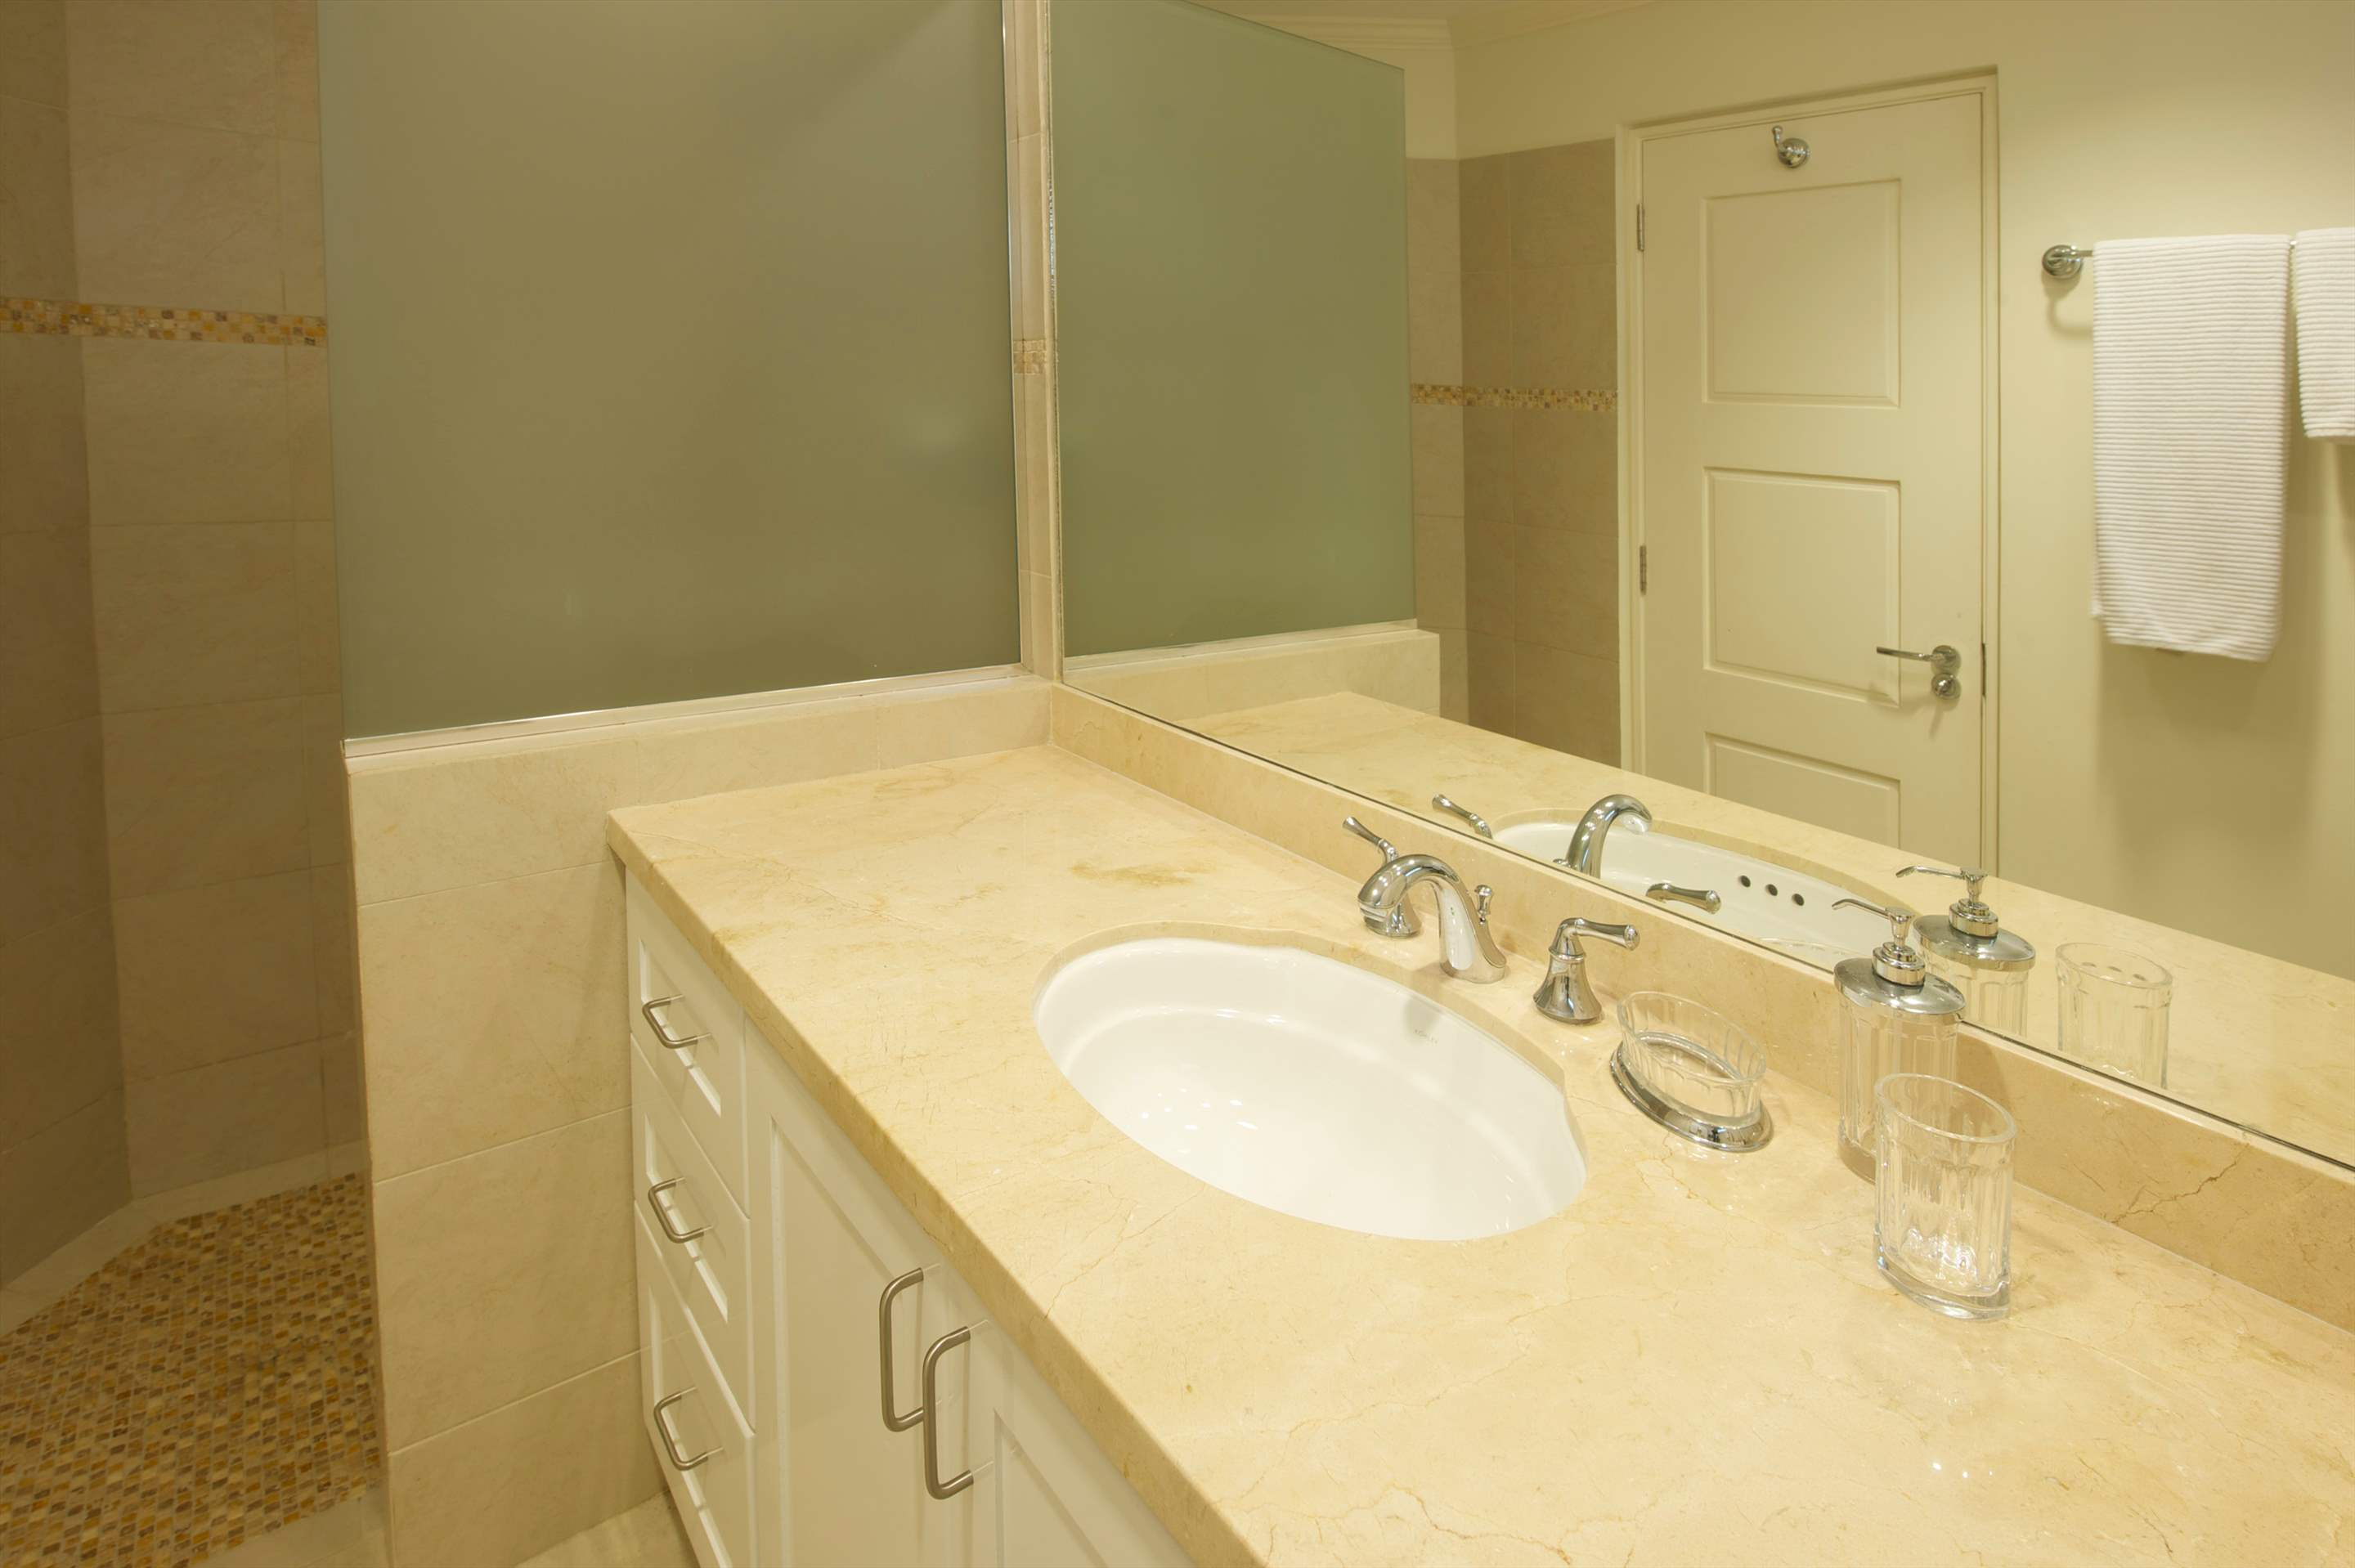 Palm Beach 110, 3 bedroom apartment in St. Lawrence Gap & South Coast, Barbados Photo #17